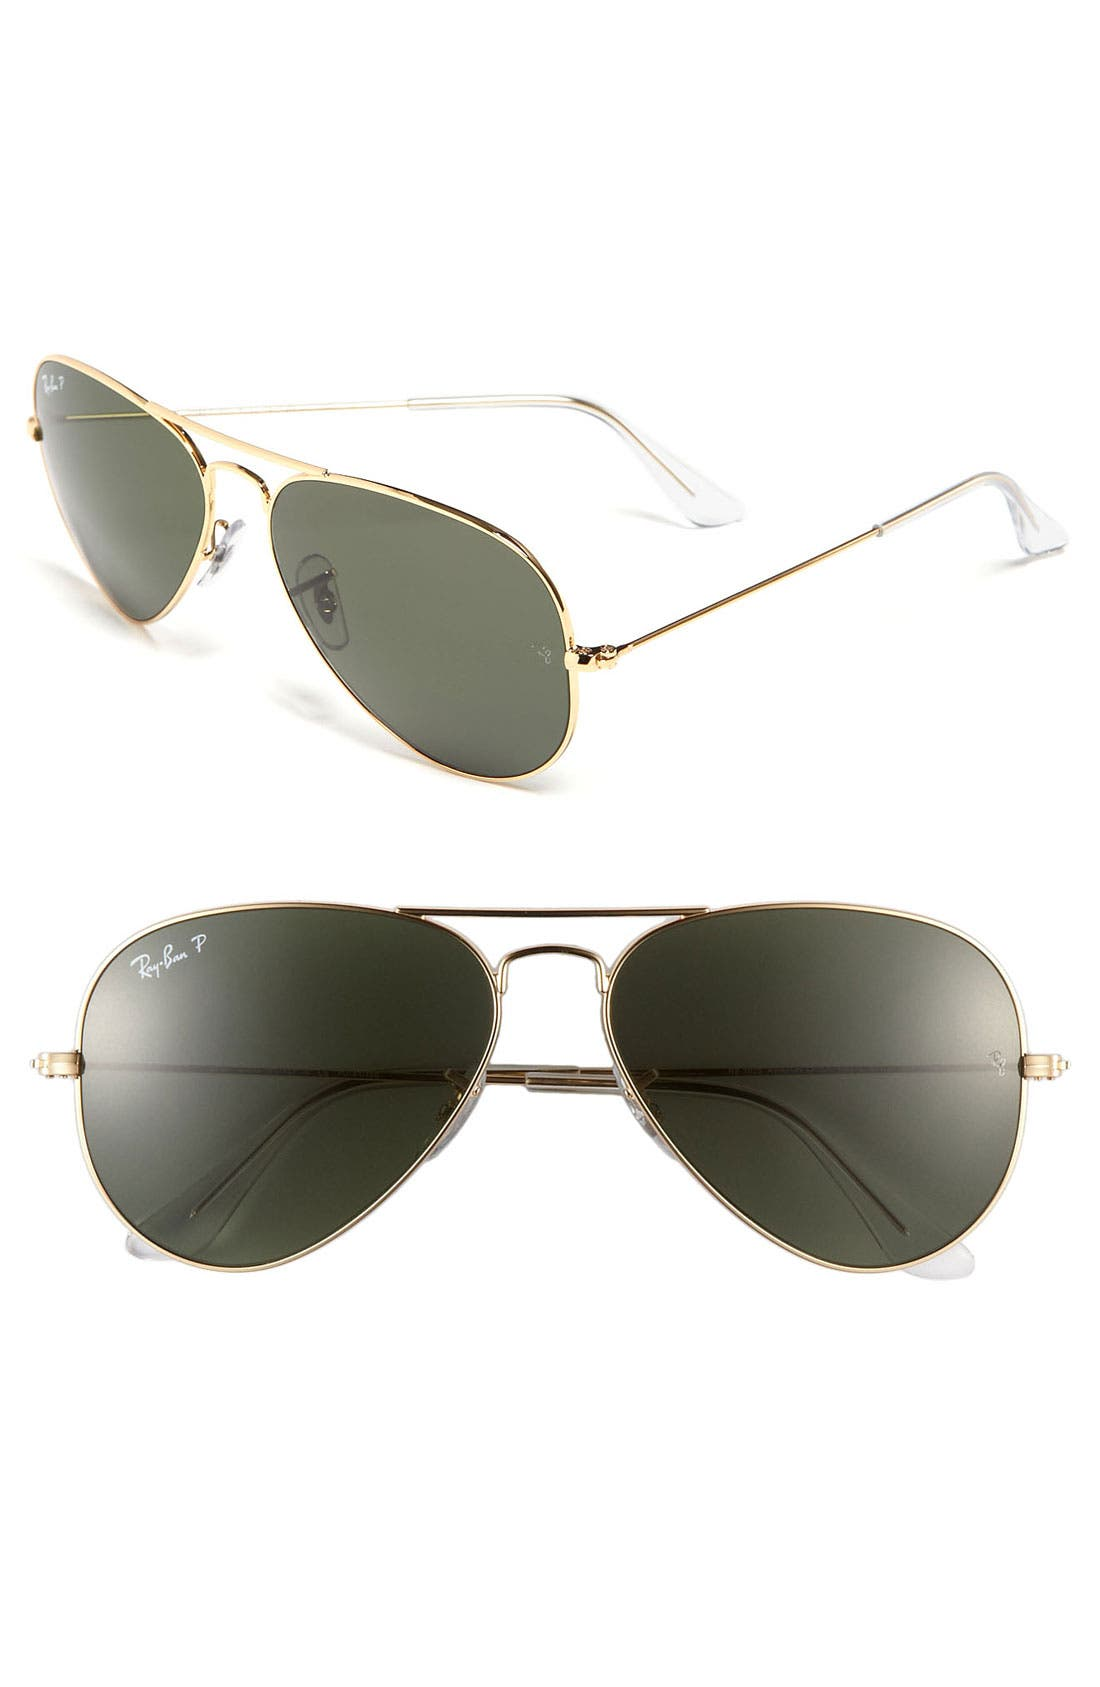 Main Image - Ray-Ban Original 58mm Polarized Aviator Sunglasses